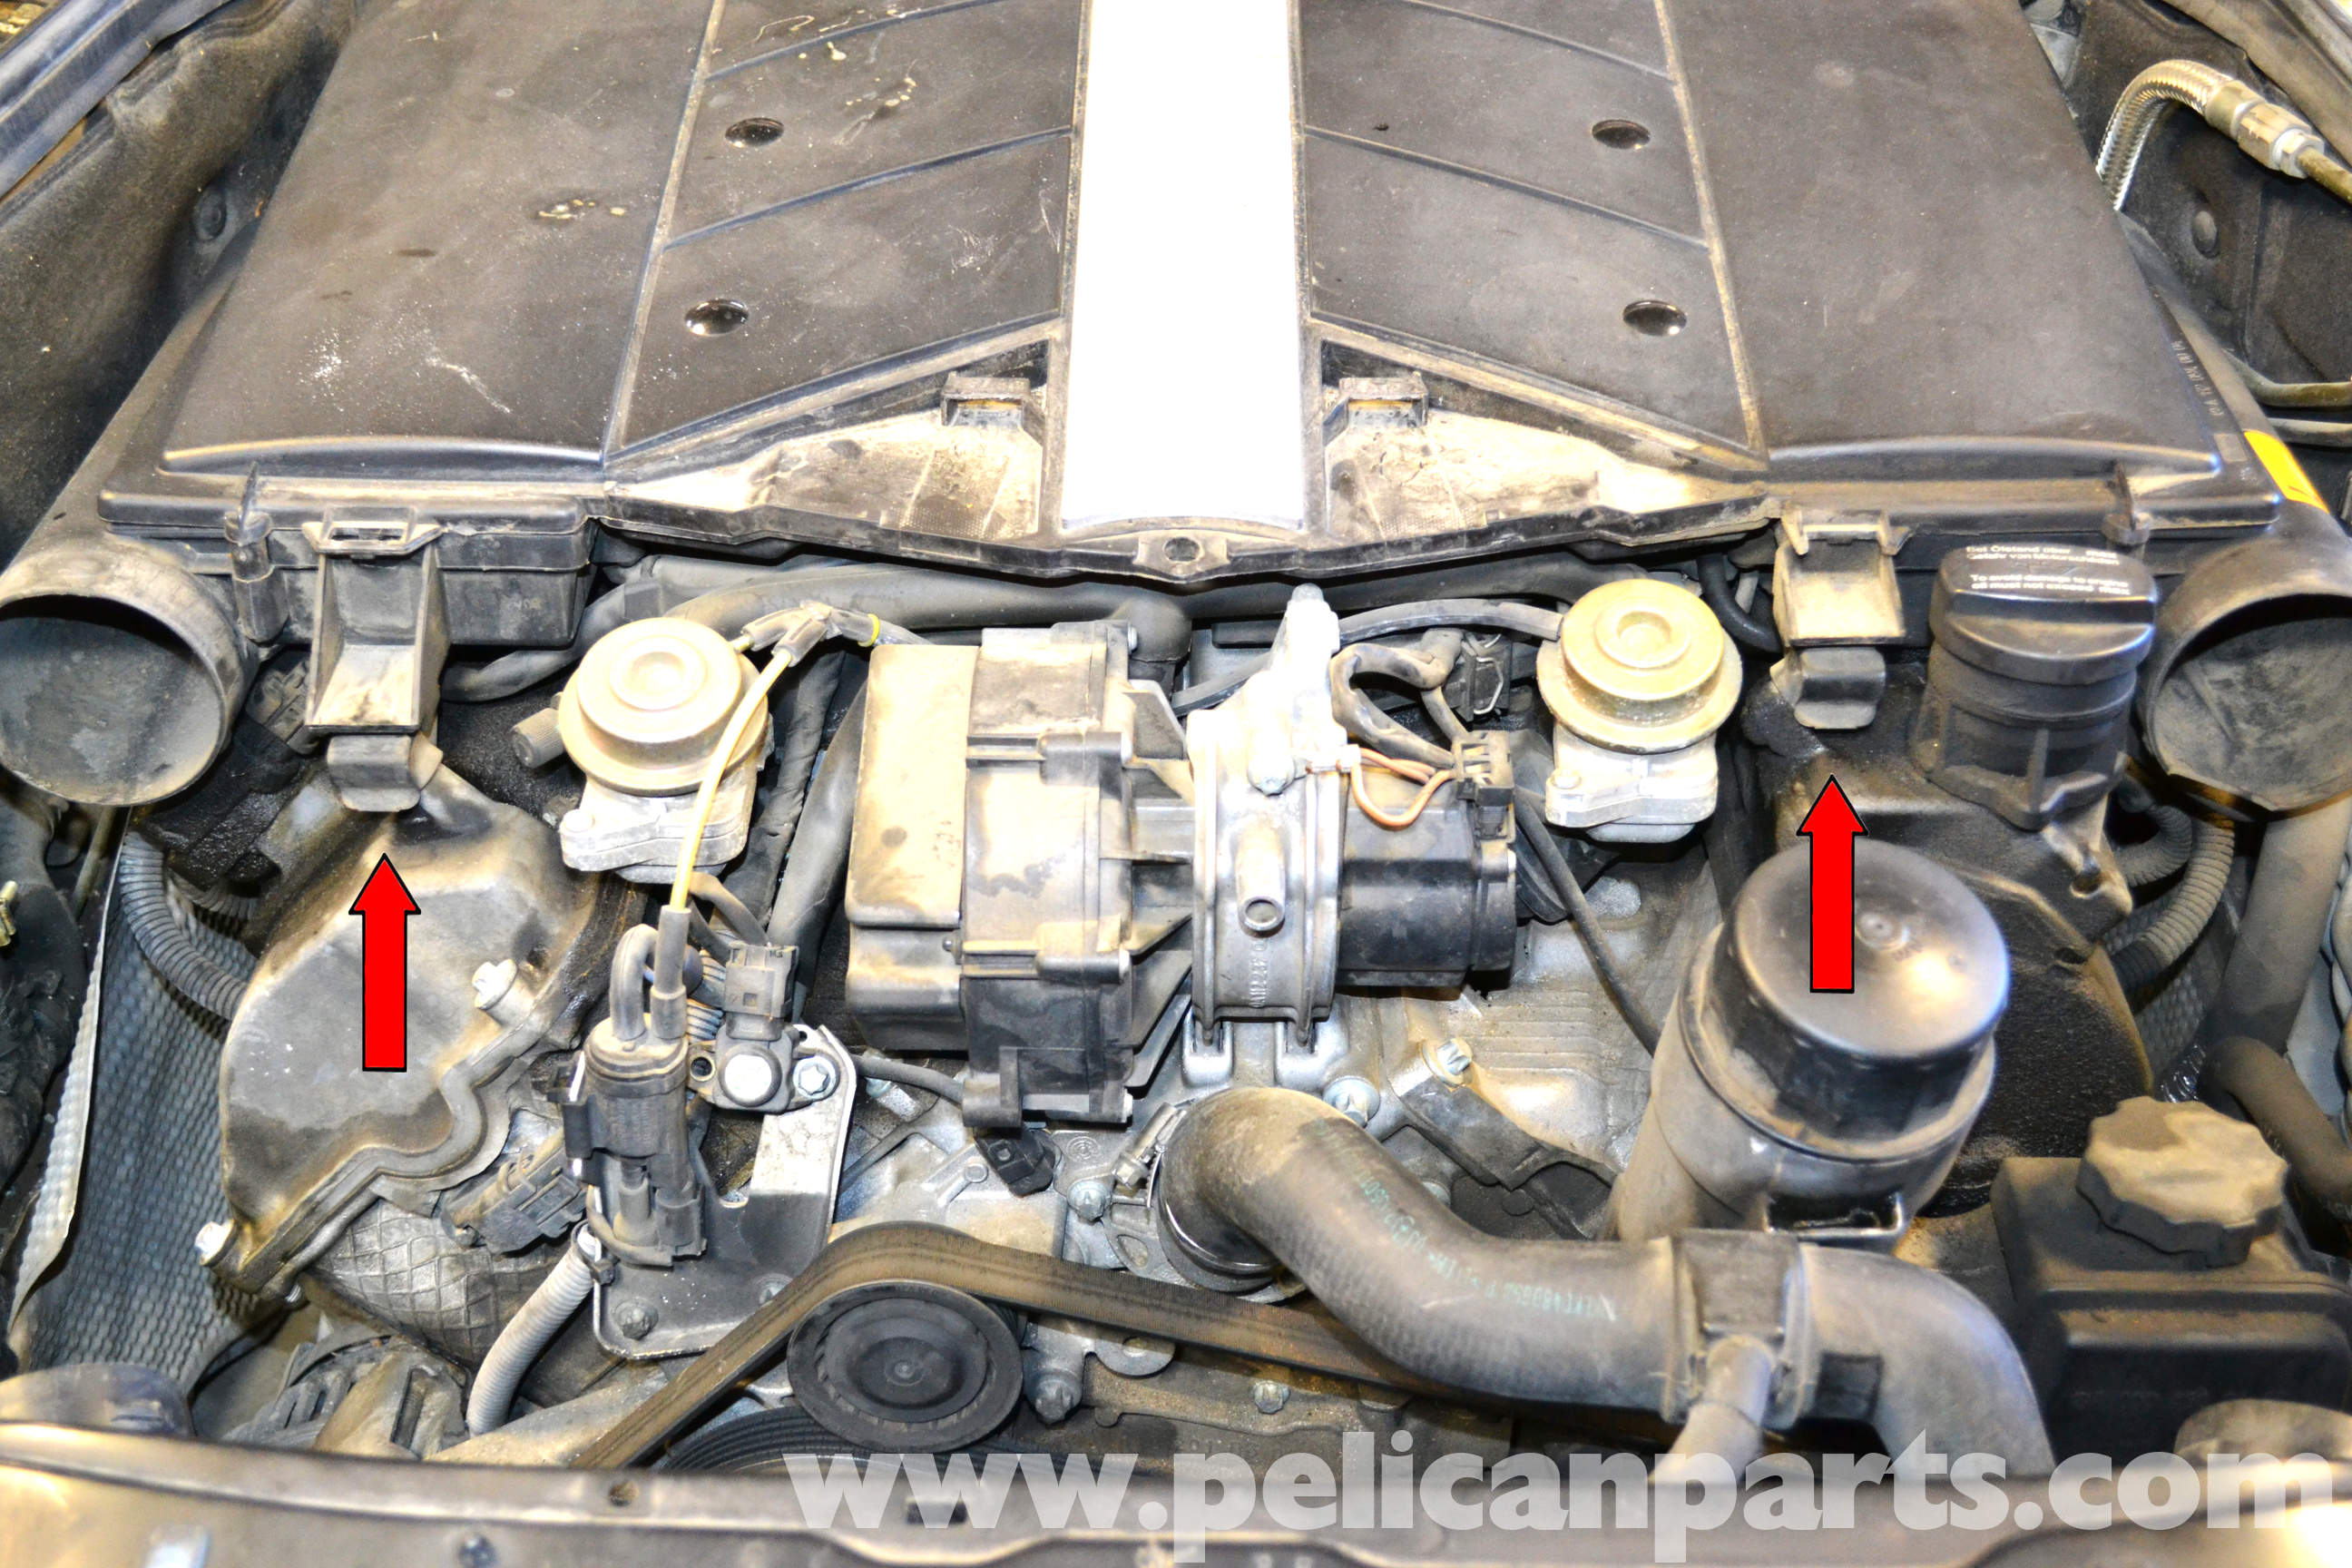 Location of egr valve 2002 c320 mercedes gmc egr valve for Mercedes benz egr valve replacement